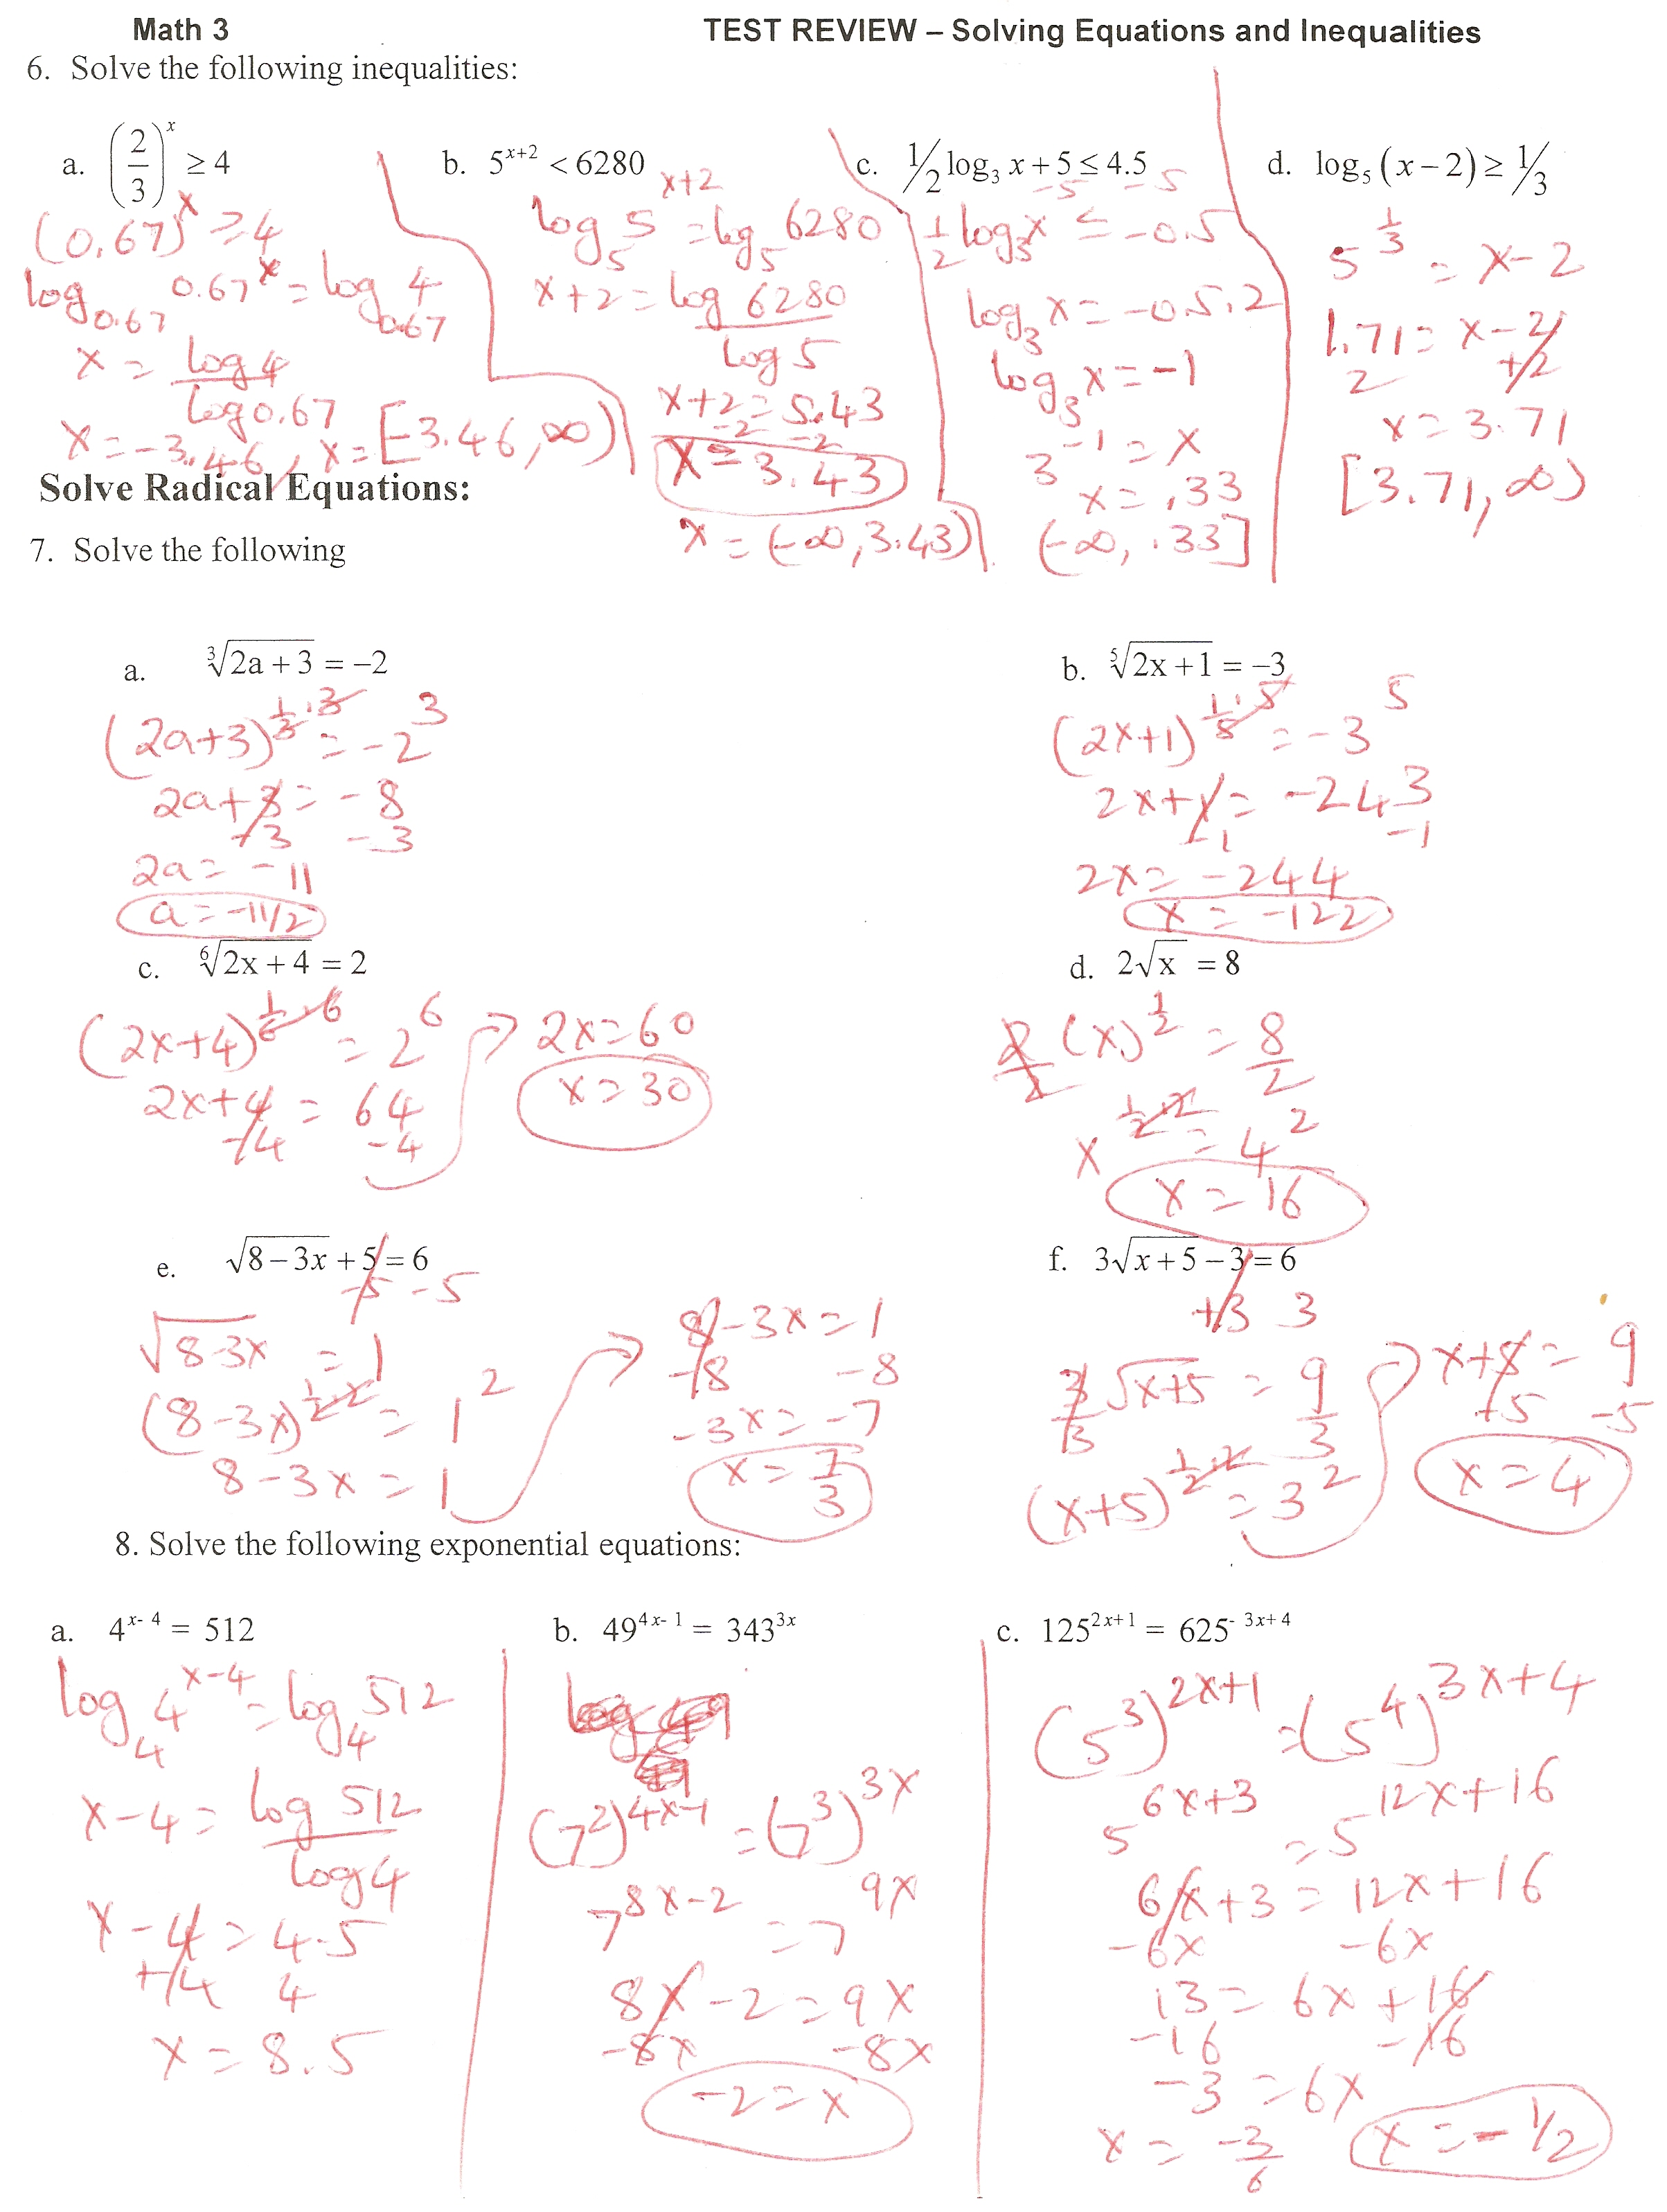 worksheet Solving Exponential And Logarithmic Equations Worksheet solving exponential and log equations test review ms osawaru view this photo